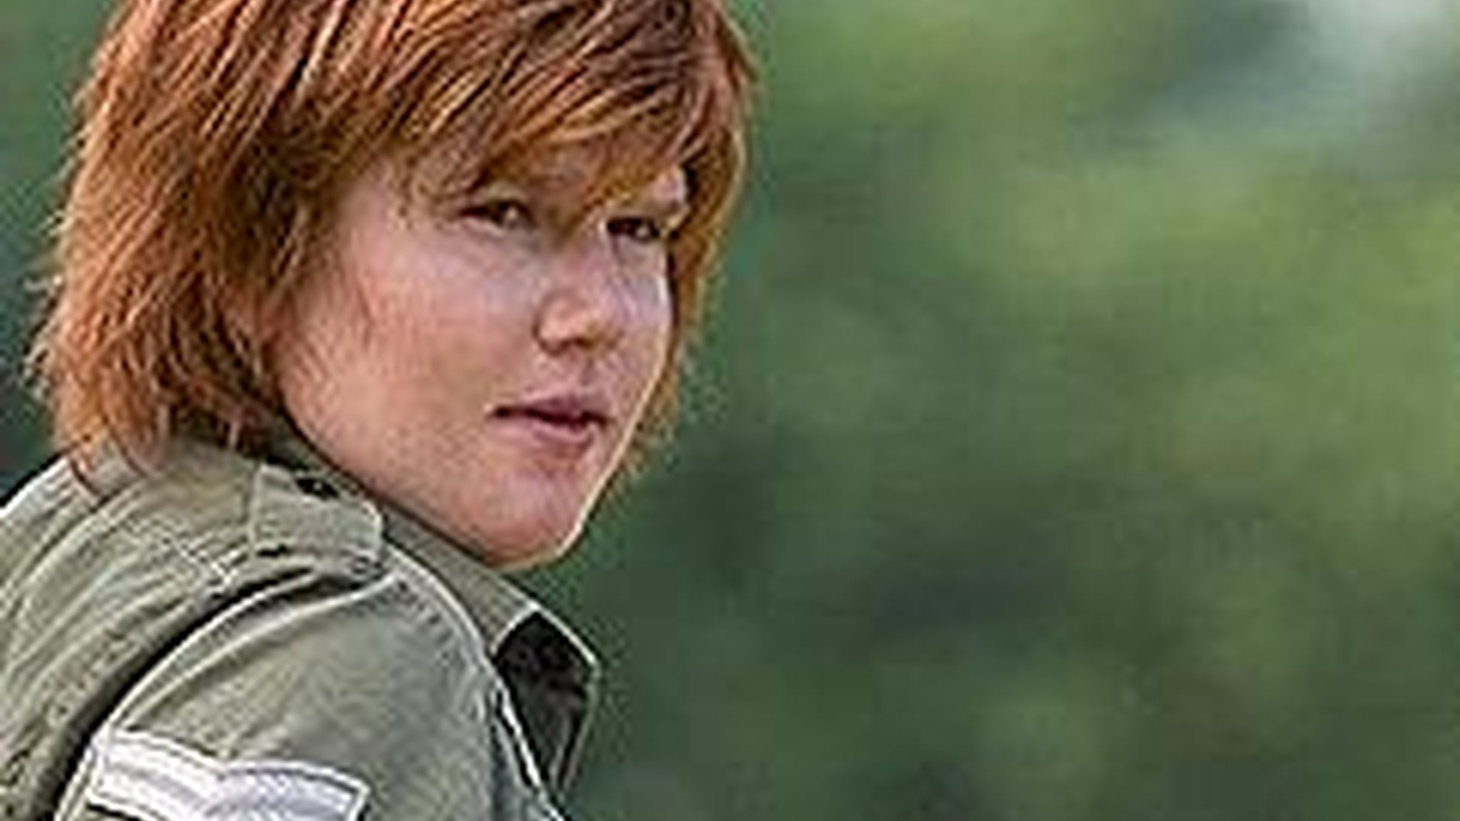 ...from Hope for the Hopeless. 